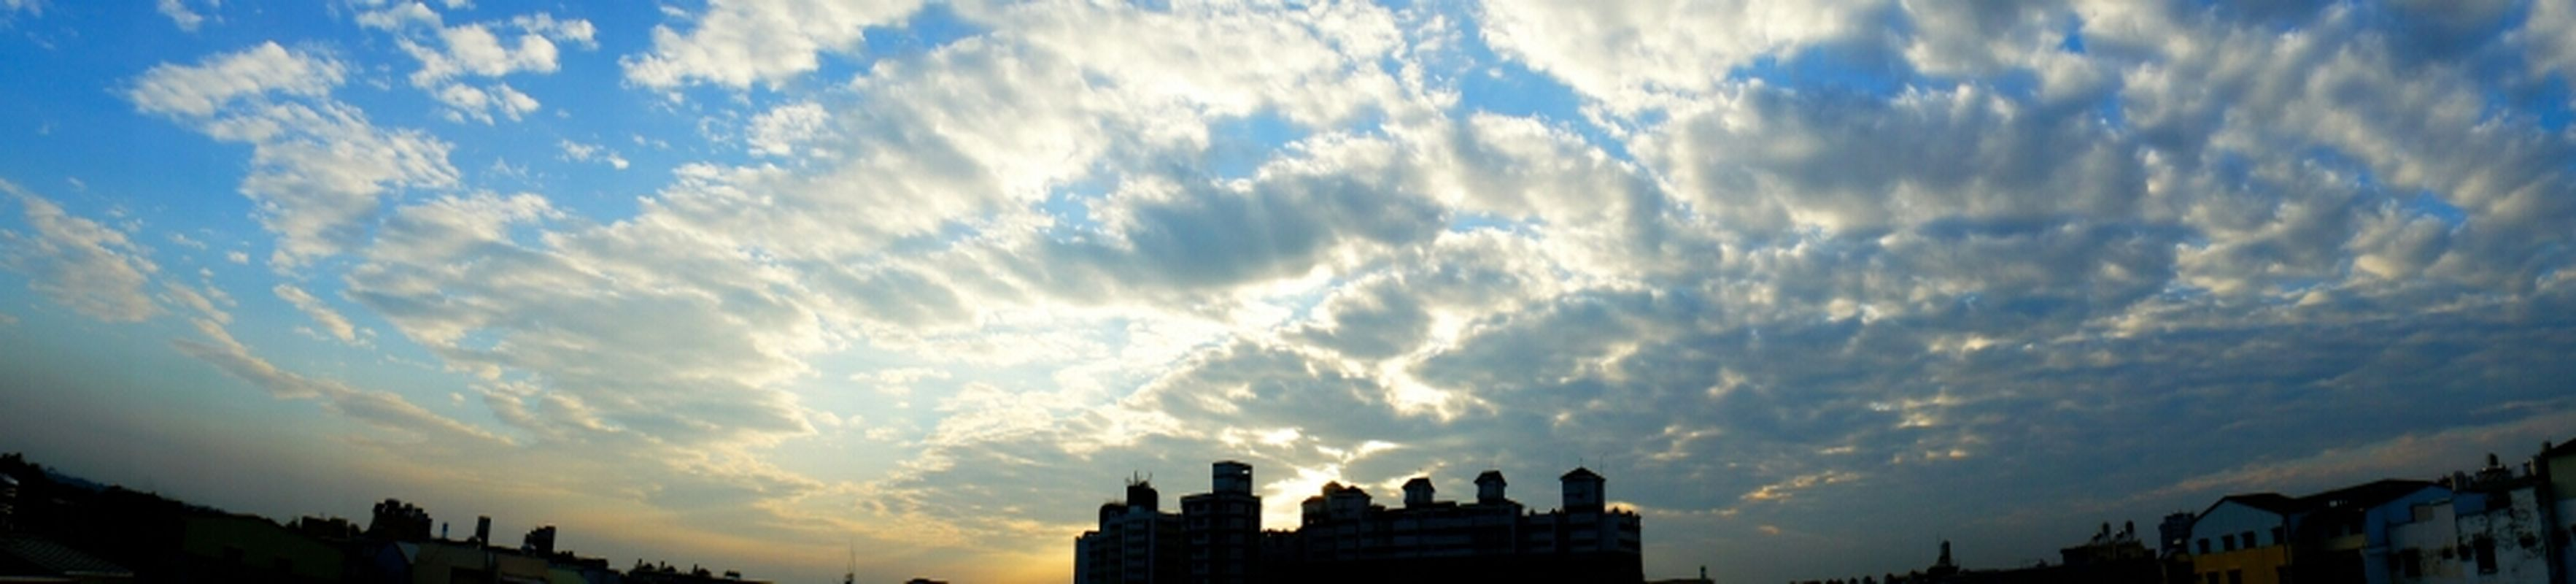 streetphotography sunset sky Enjoying the Sun Enjoying the View Taiwan enjoying life clouds and sky what i saw clouds by 陳 馴仁